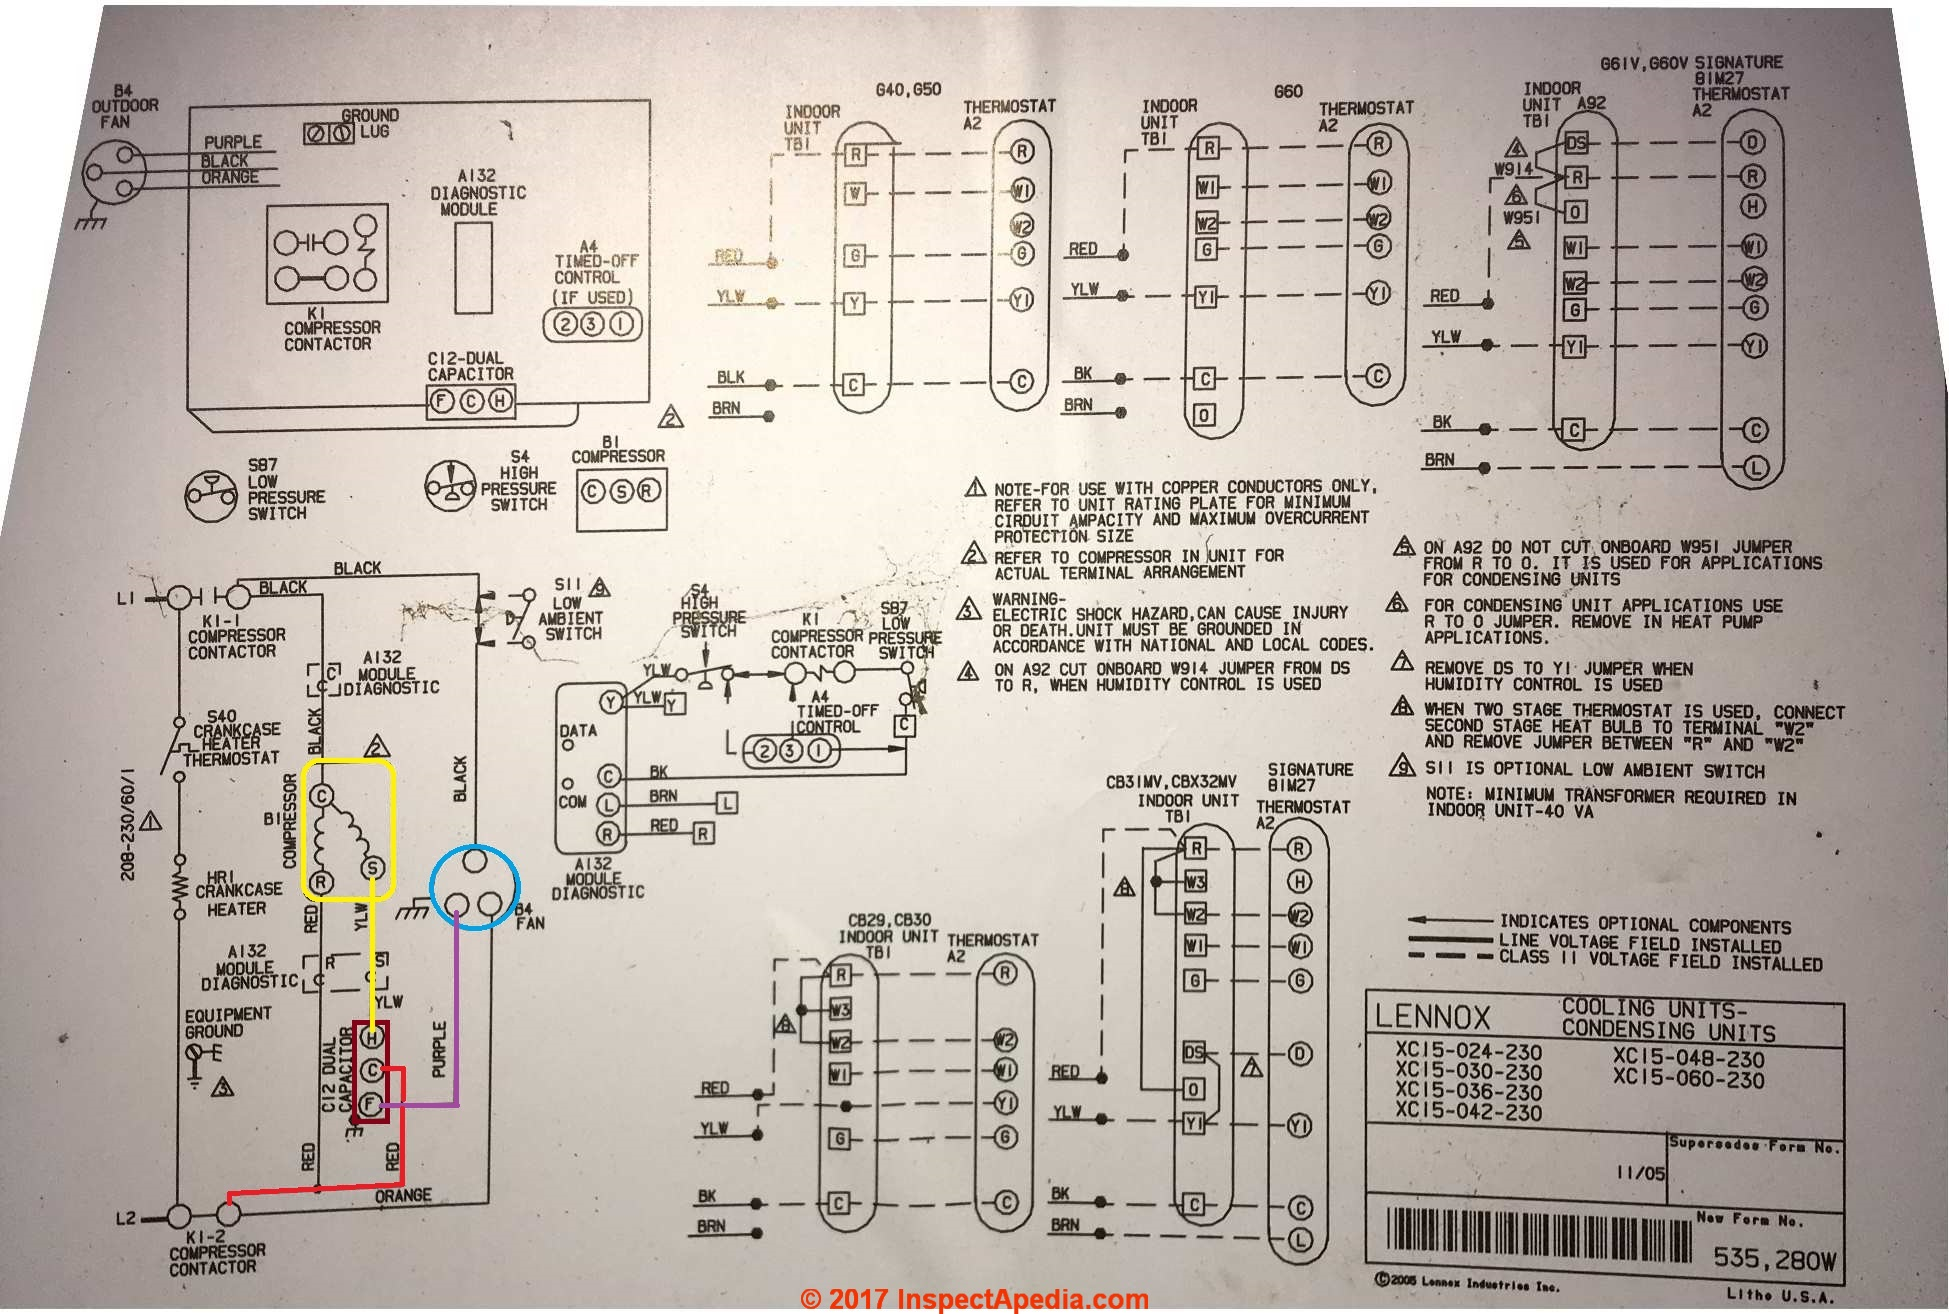 Electric Motor Starting Run Capacitor Types Installation Guide To Condensing Unit Schematic Lennox Xc15 Condenser Wiring Diagram C Showing Connections